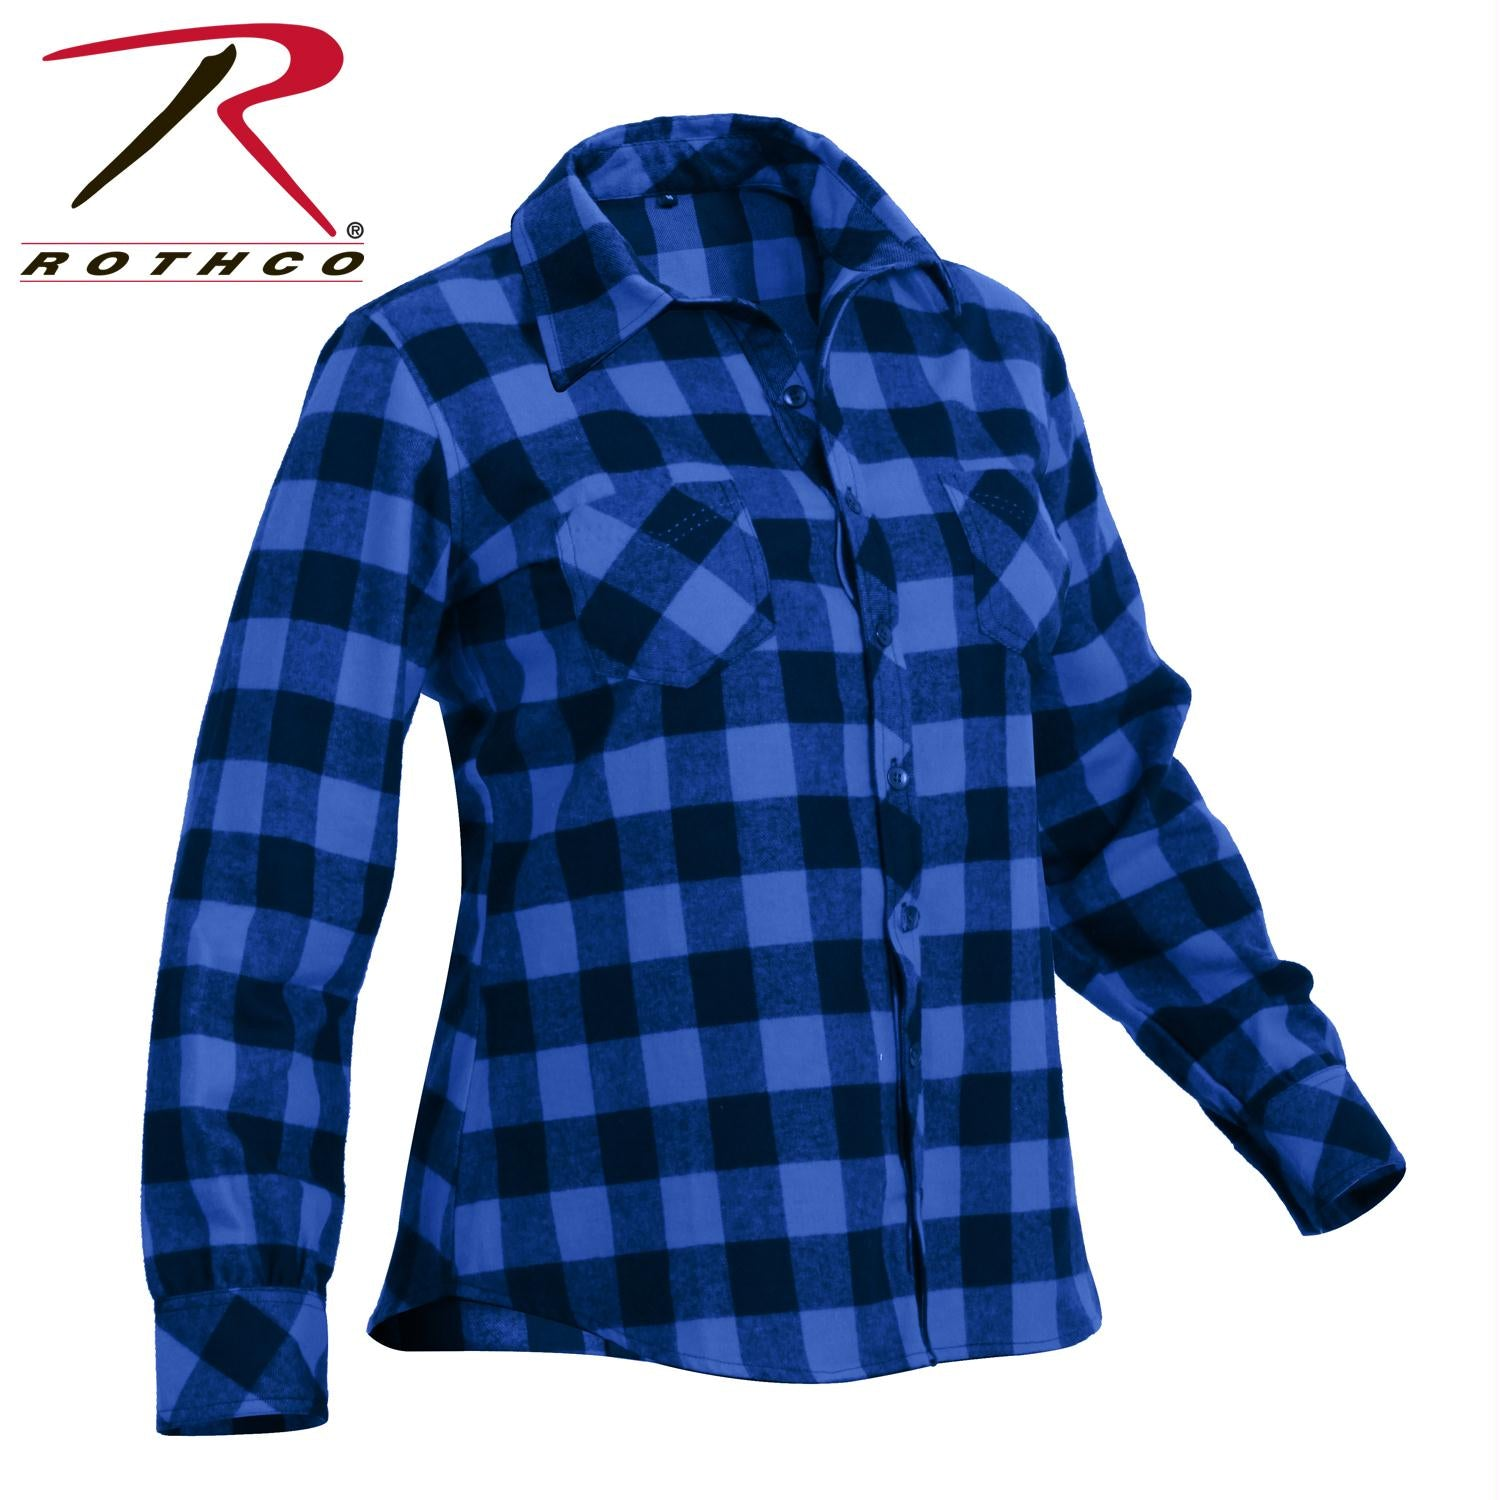 Rothco Womens Plaid Flannel Shirt - Blue / Black / S